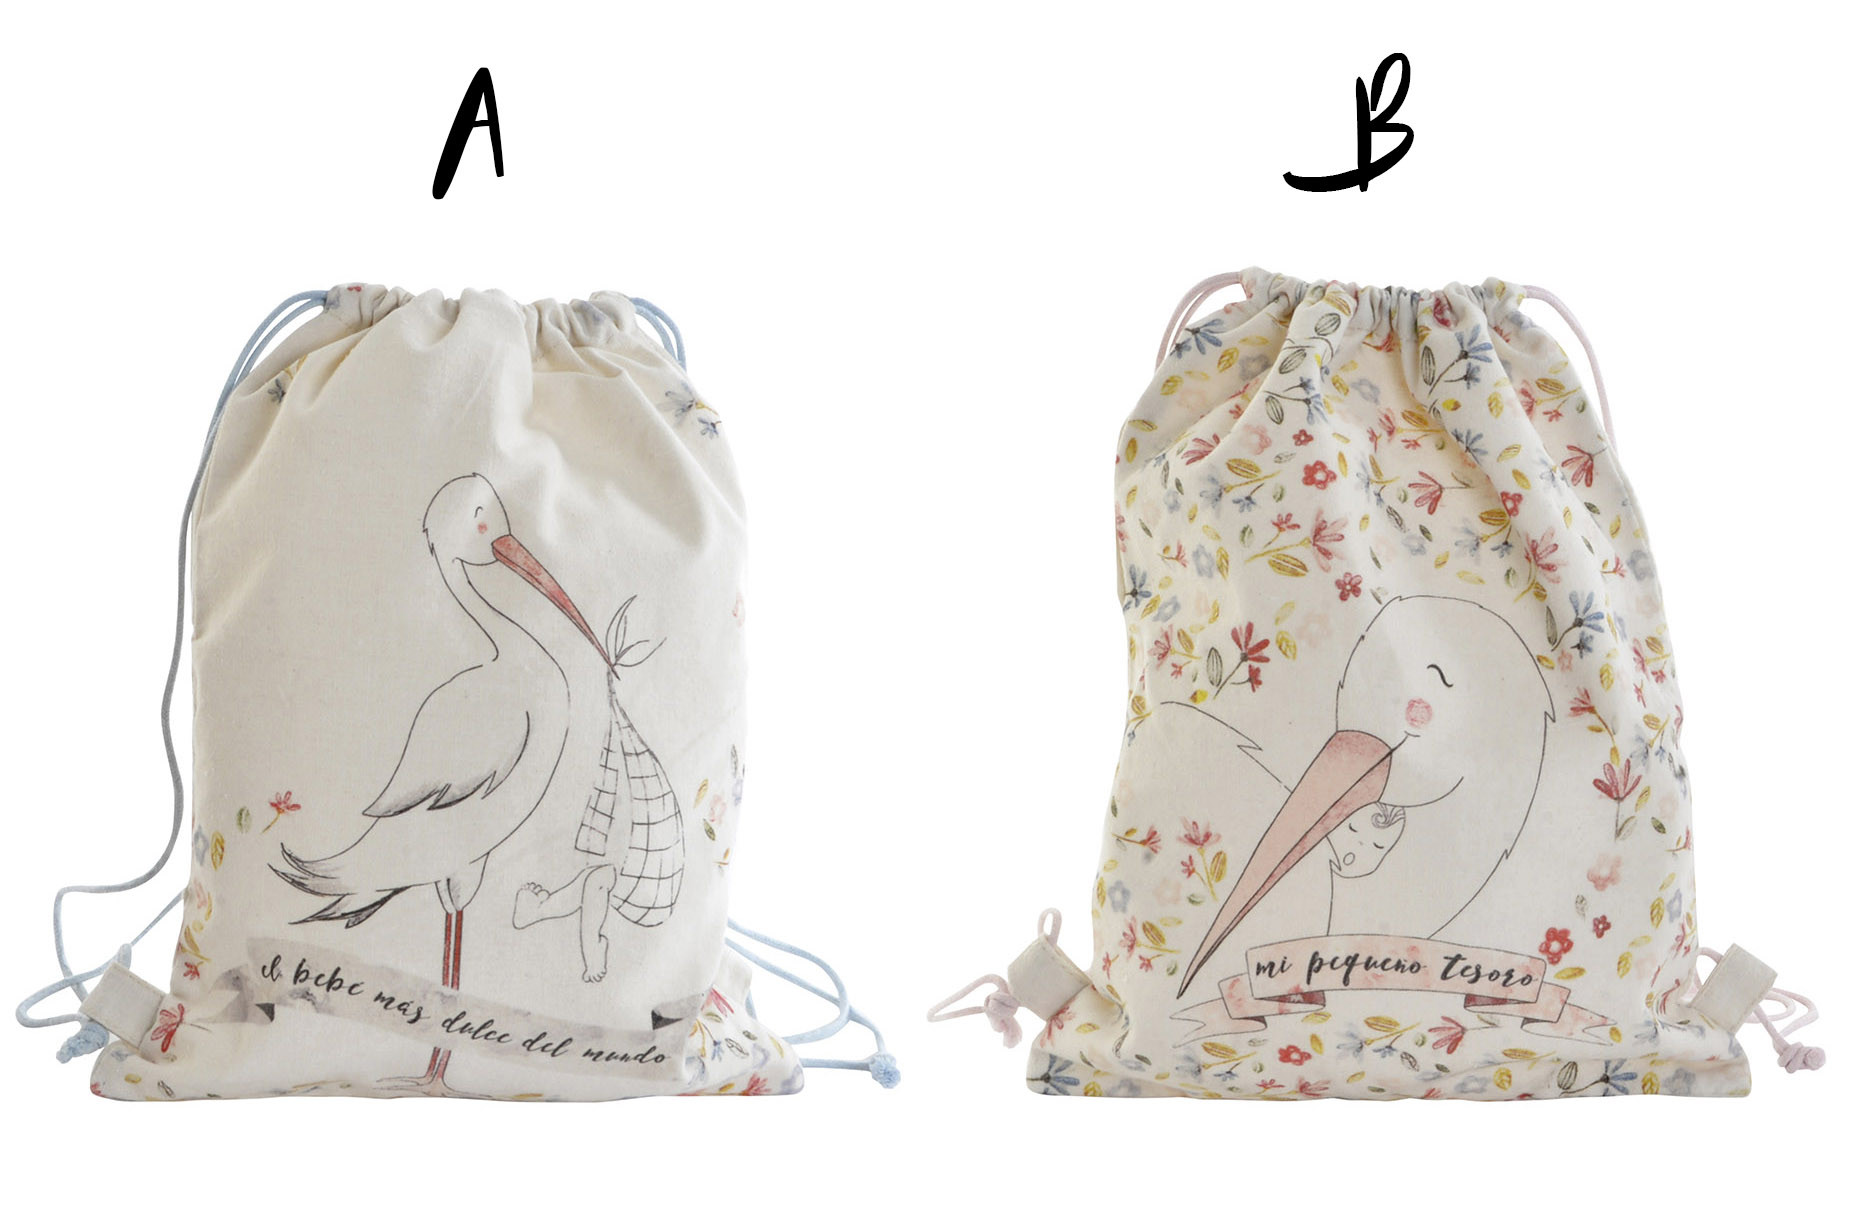 Backpack/Sack of Ropes in Cotton, 2 Models to choose from. Design of Storks and Sentence Motivating/Original 28X36 cm-Hogarymas-